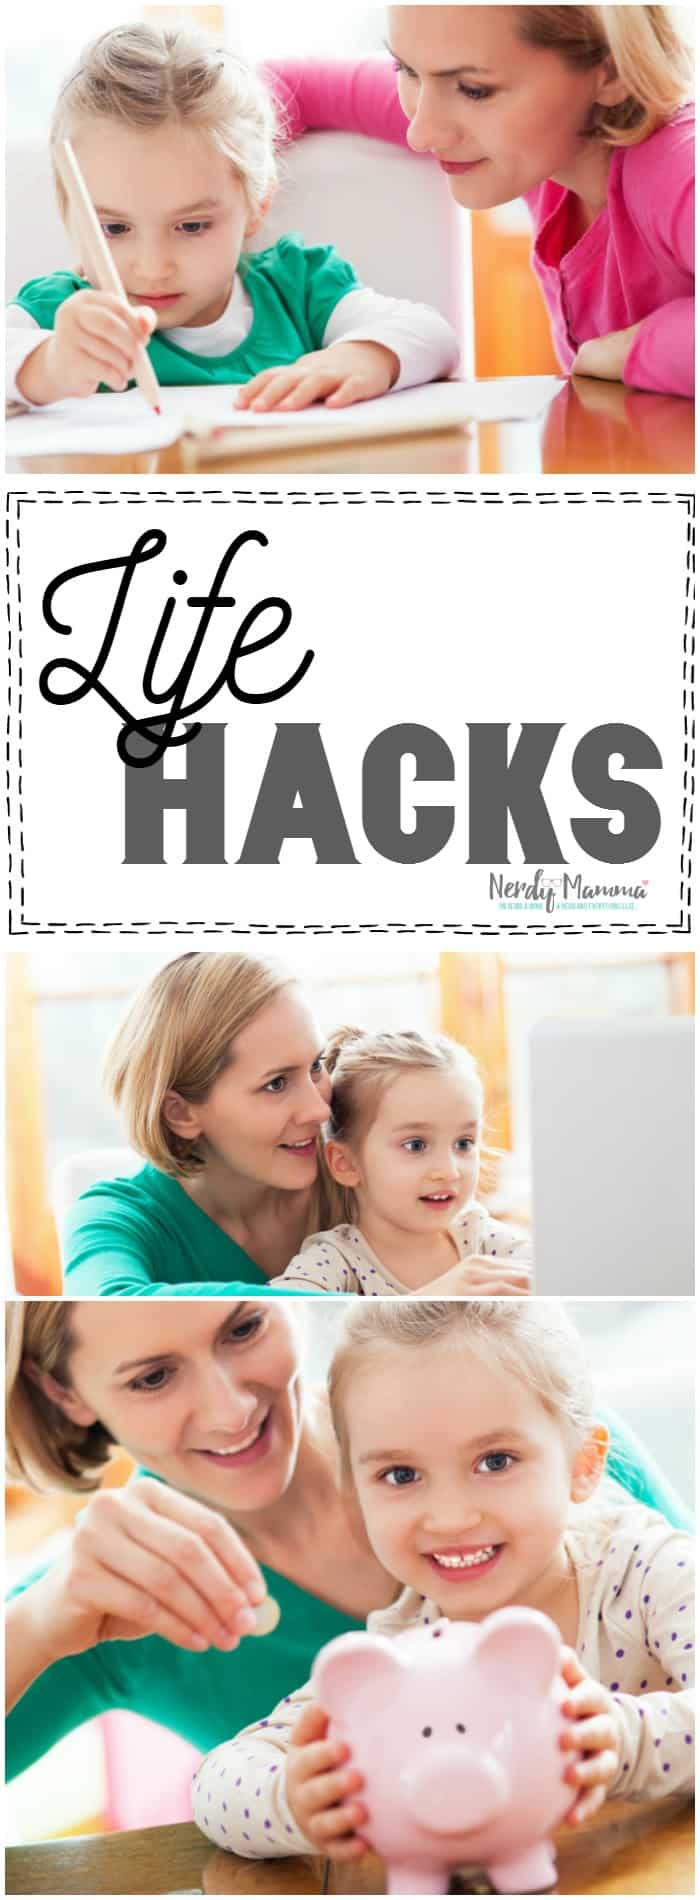 OMG, I needed all these life hacks. Plus they're all in one place. Score!